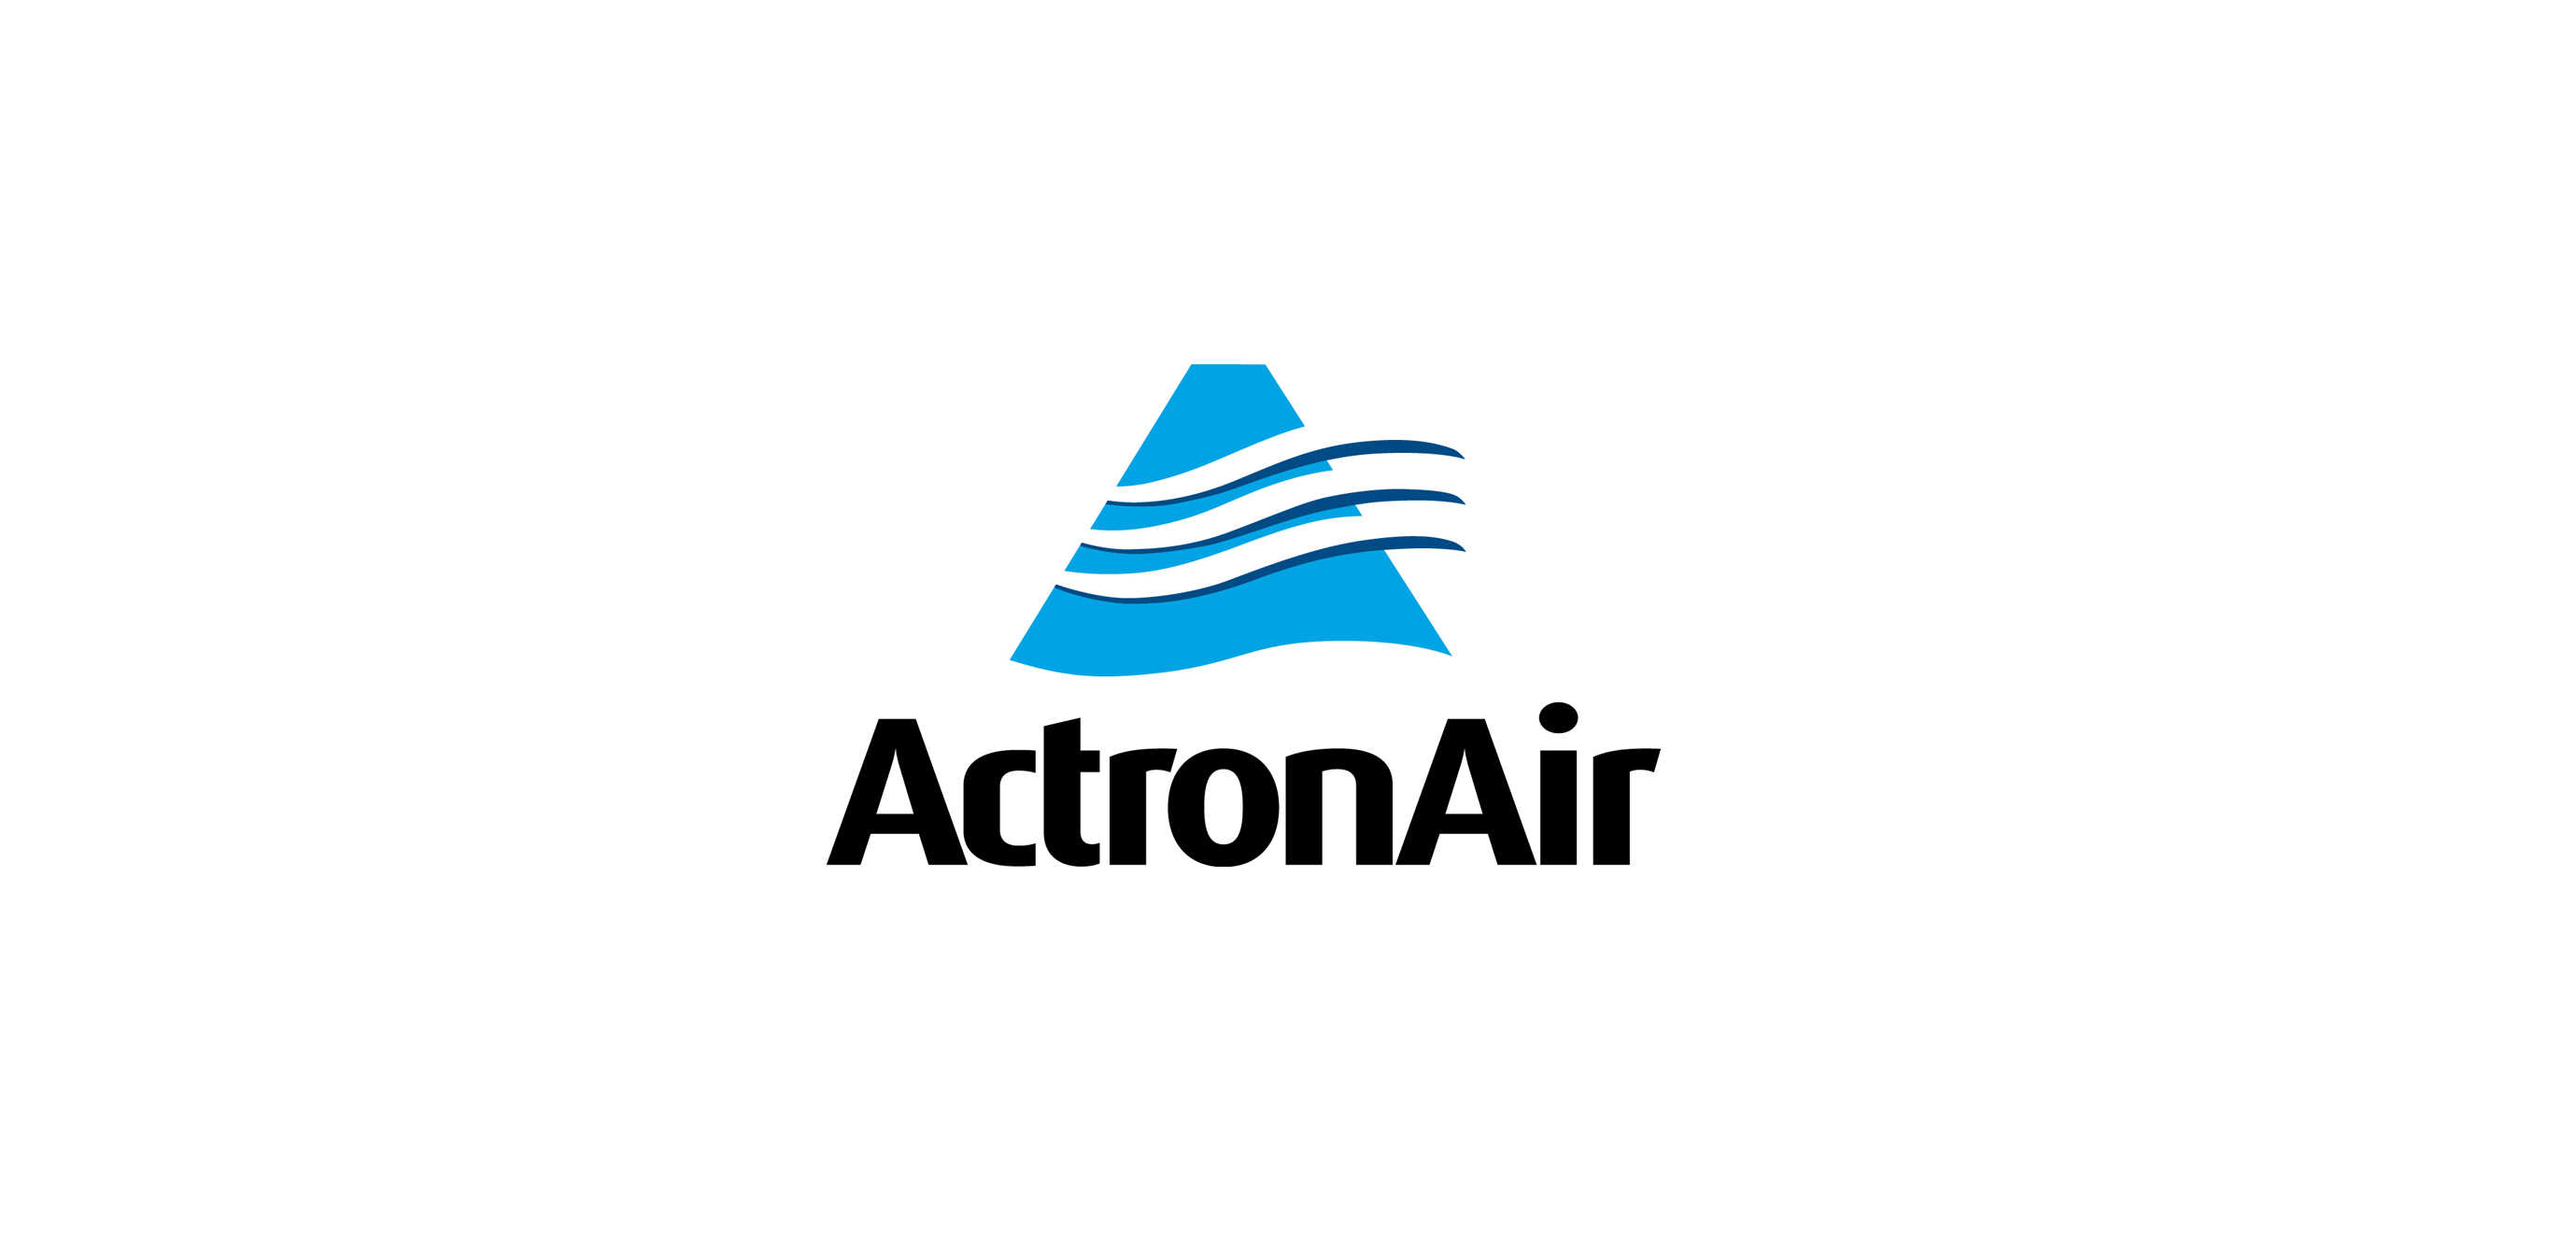 ActronAir-Stacked_CMYK_No-R-scaled.jpg PlusPng.com  - Actron Air PNG